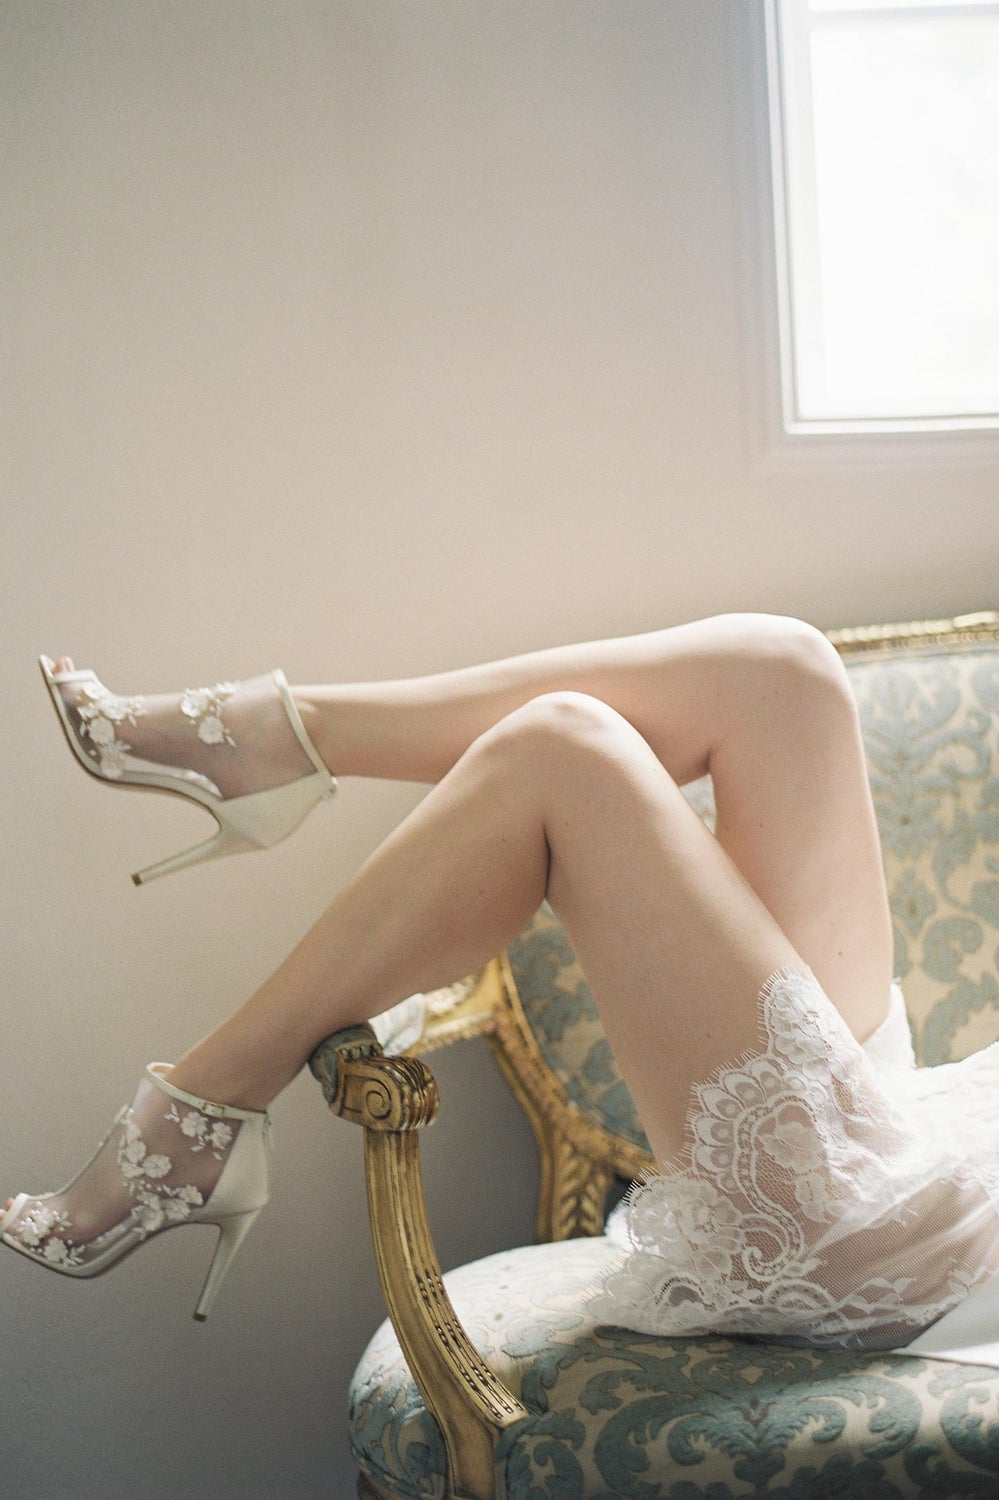 Image of Boudoir Bridal Lace Robe in off-white